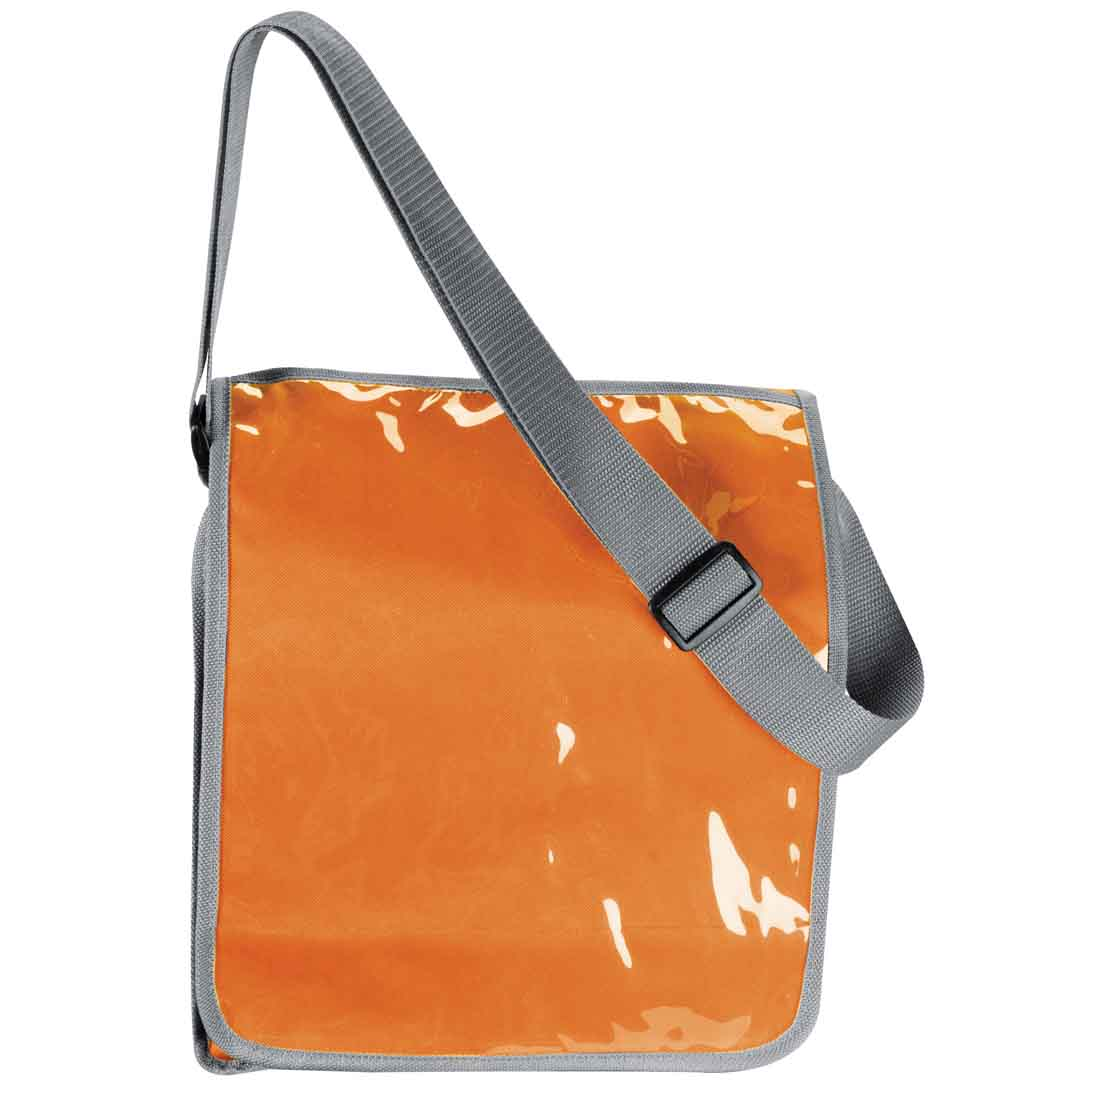 600D polyester shoulder bag - orange mac-2810910